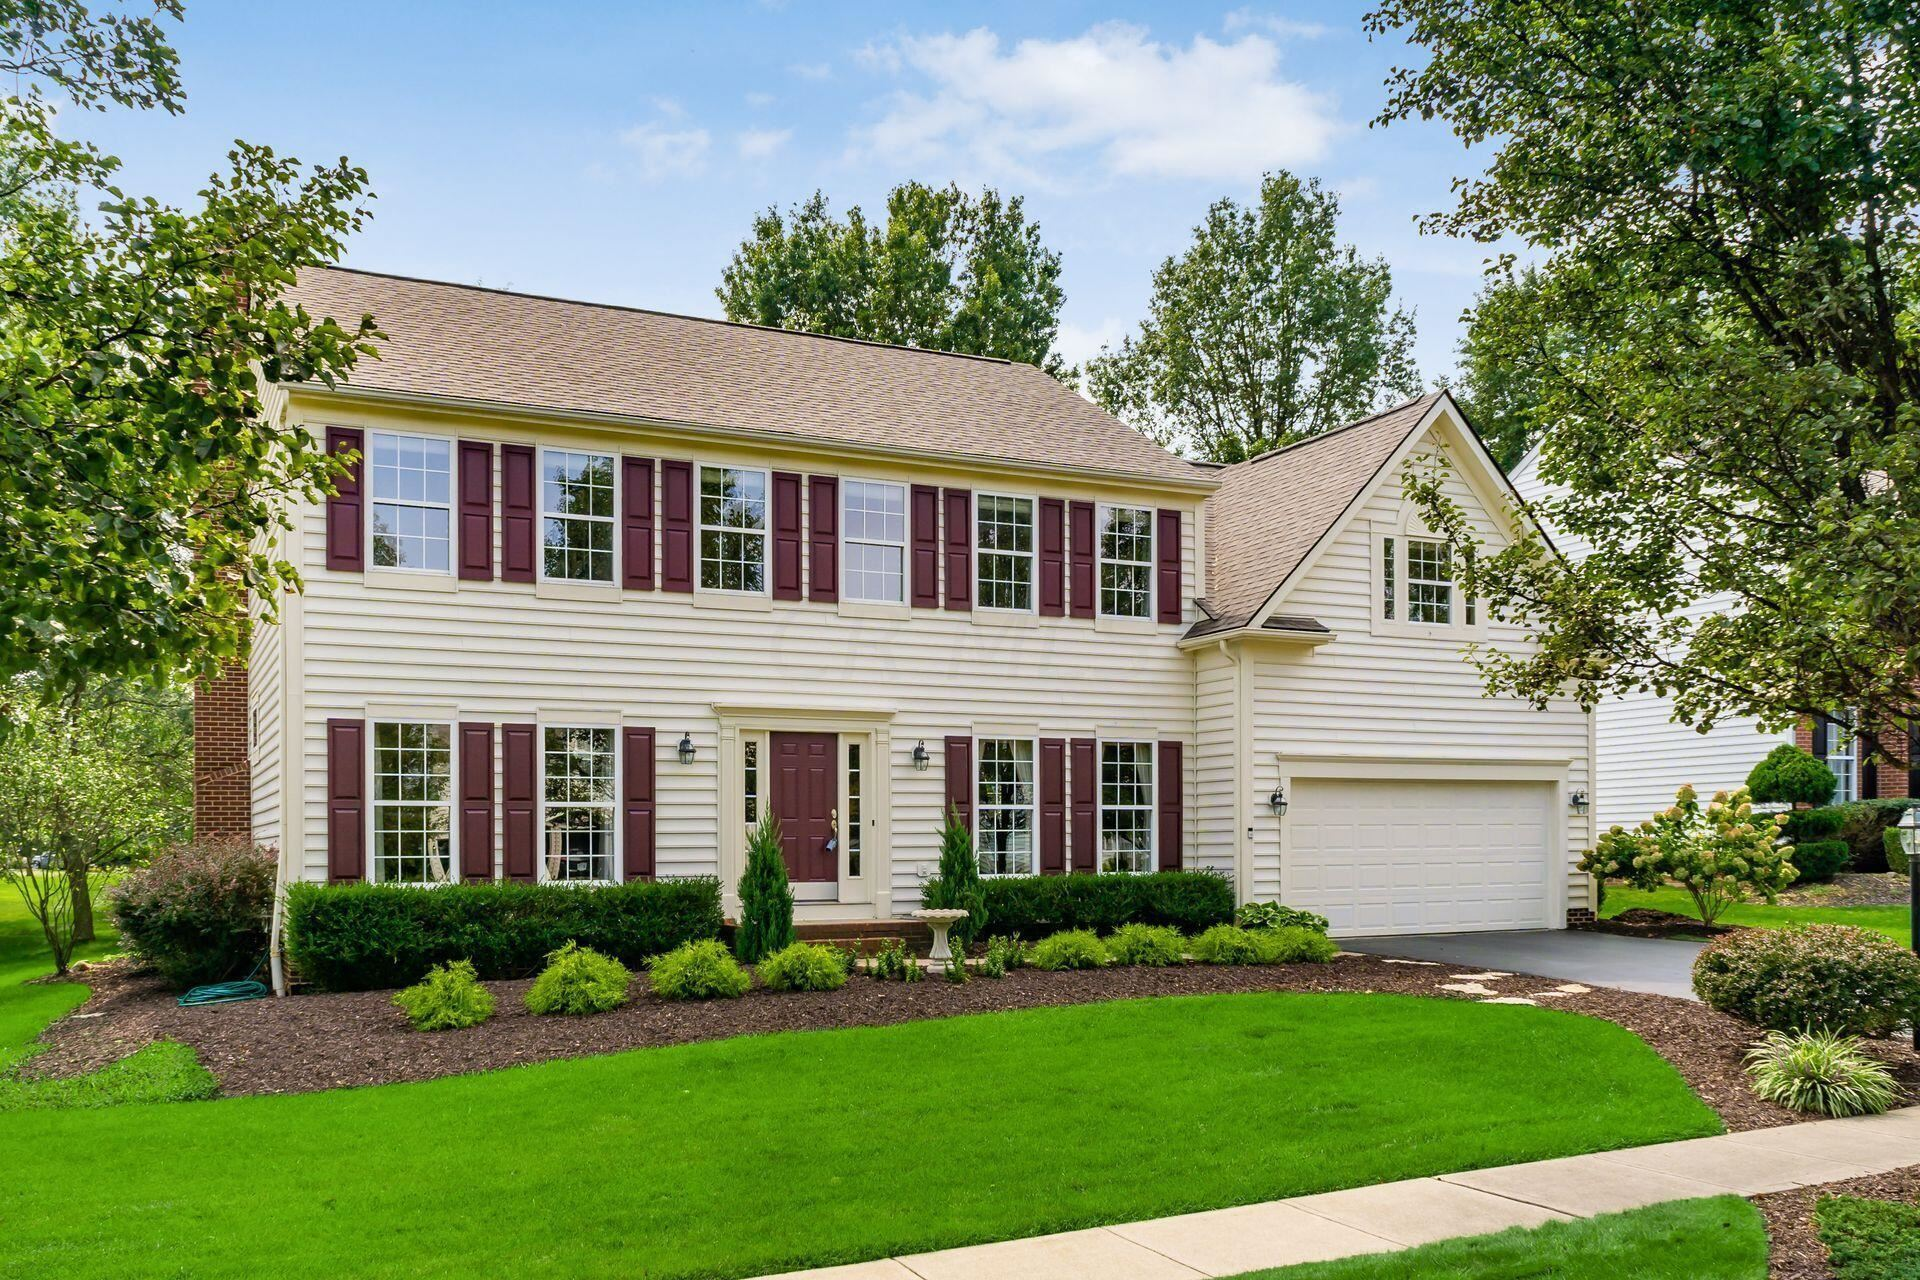 Photo of 5100 Sierra Drive, Westerville, OH 43082 (MLS # 221036238)